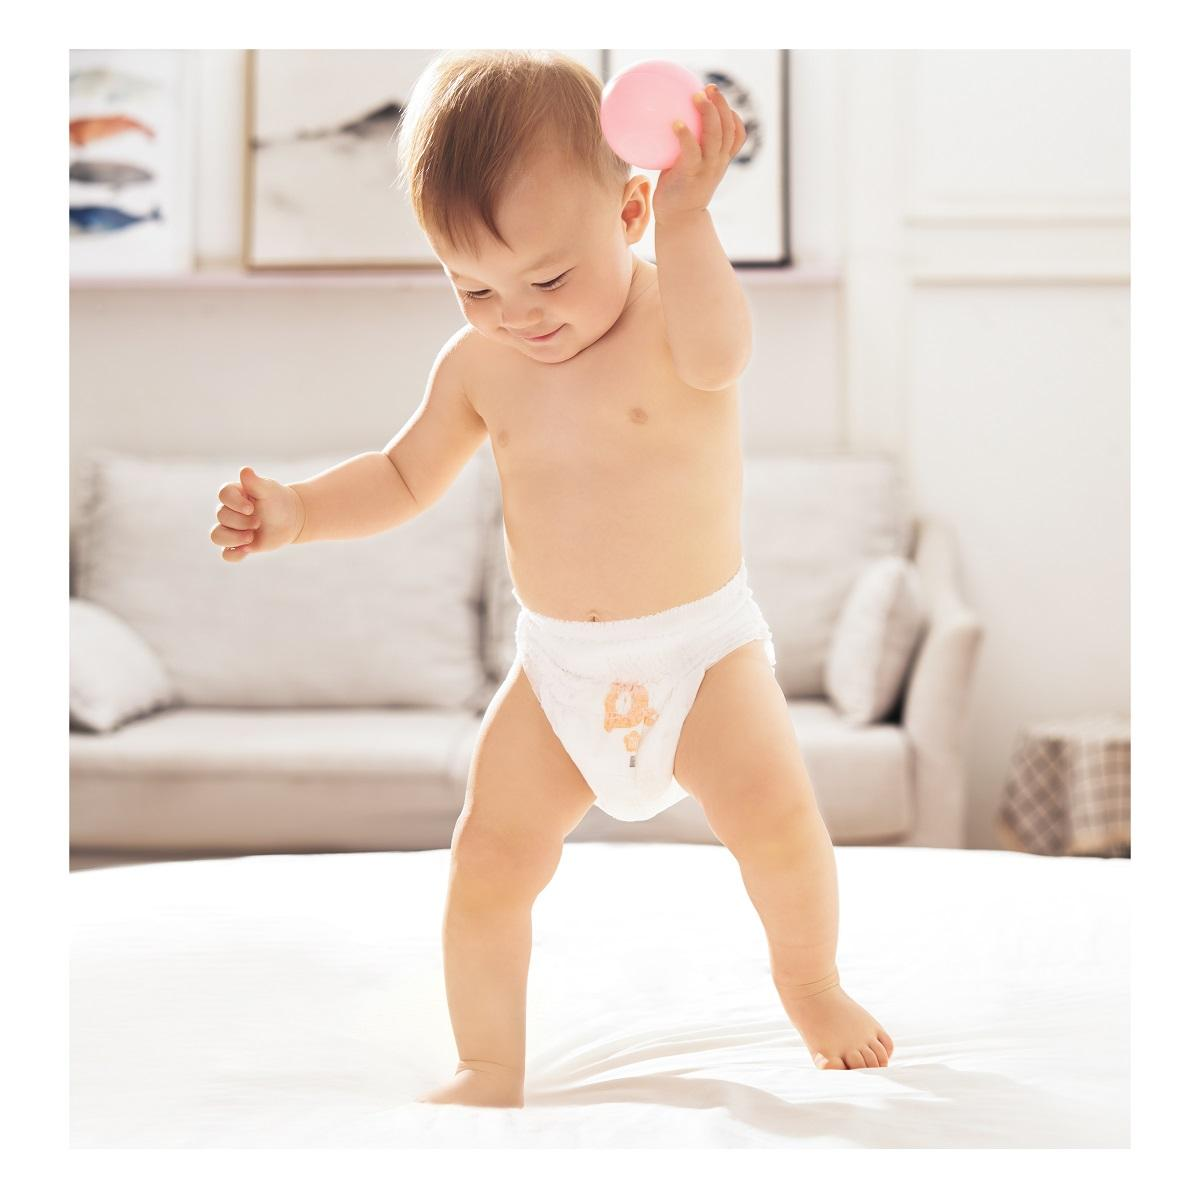 Daddy's Choice baby Diapers discount price in stock